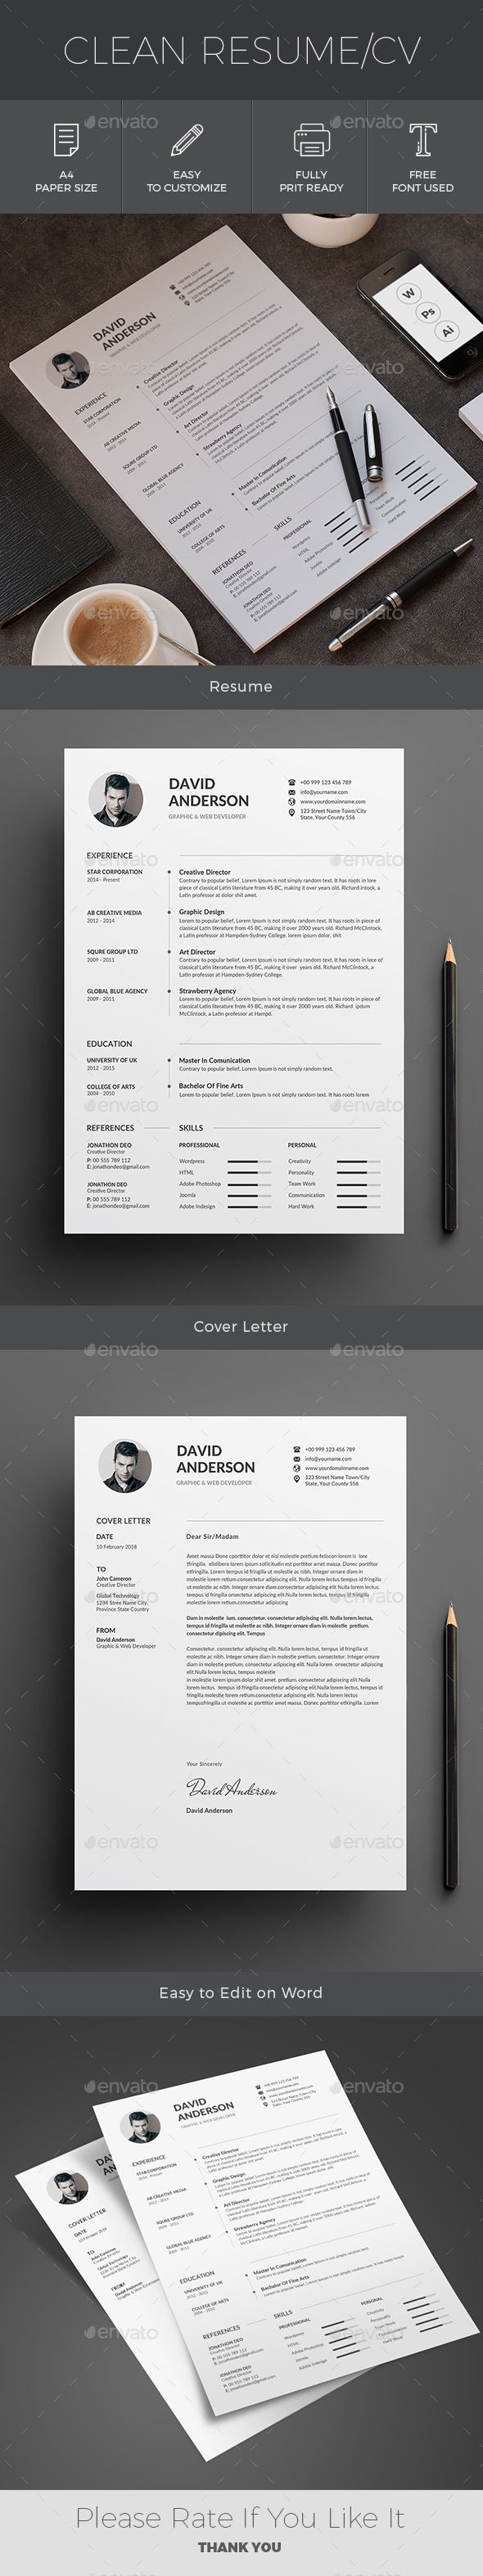 Word Cv Templates 2007%0A Resume  u     AI Illustrator  cv template  word  u     Download     https